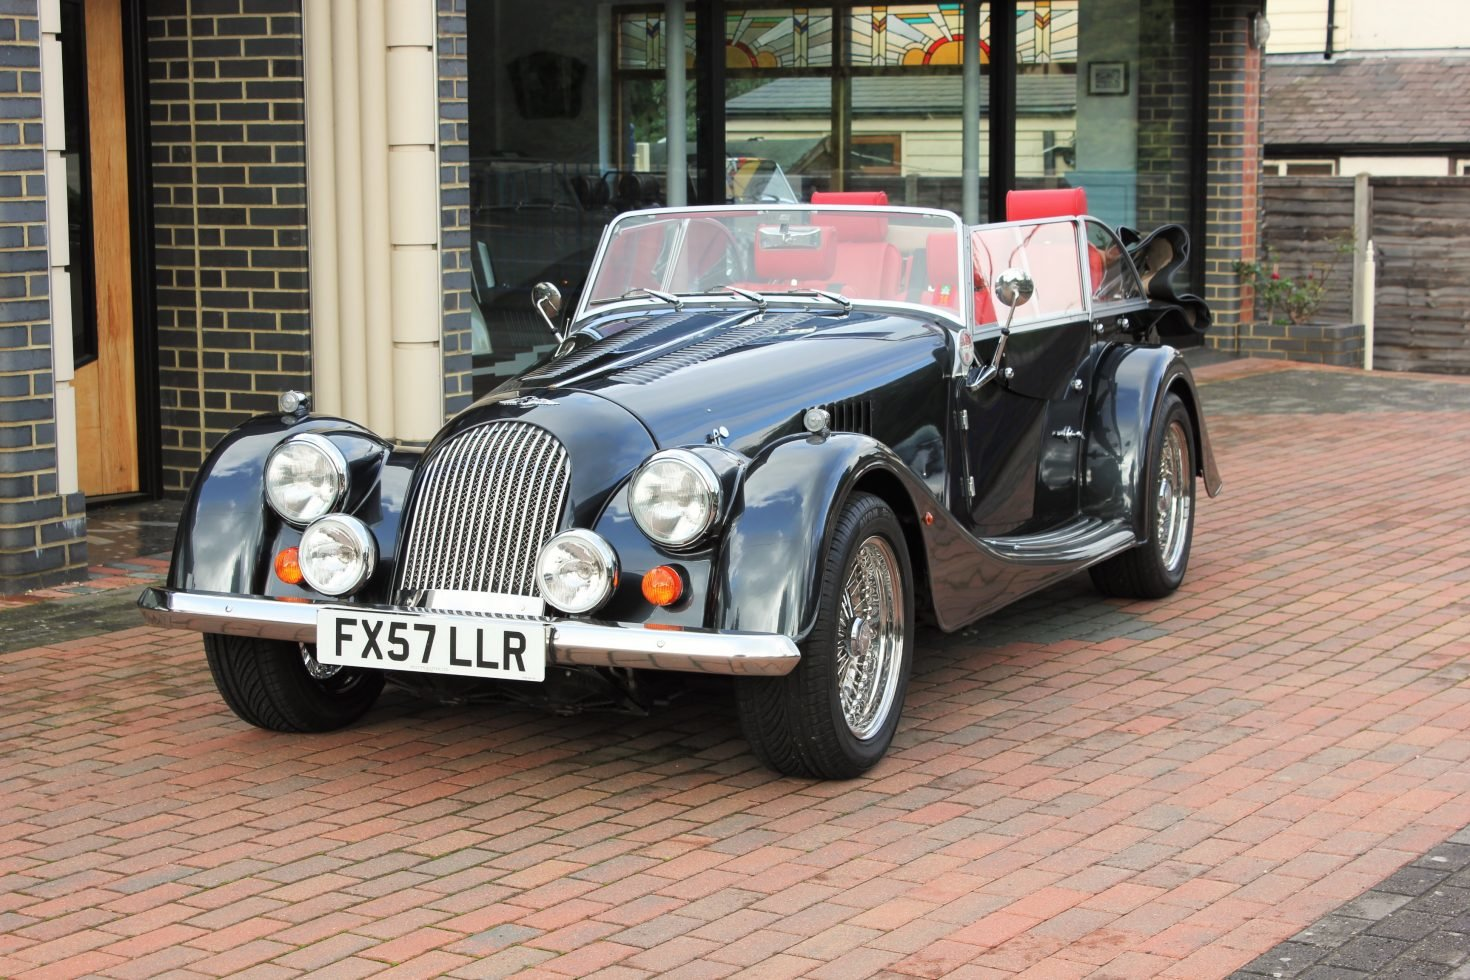 2008 Morgan Roadster V6 4-seater SOLD (picture 1 of 6)